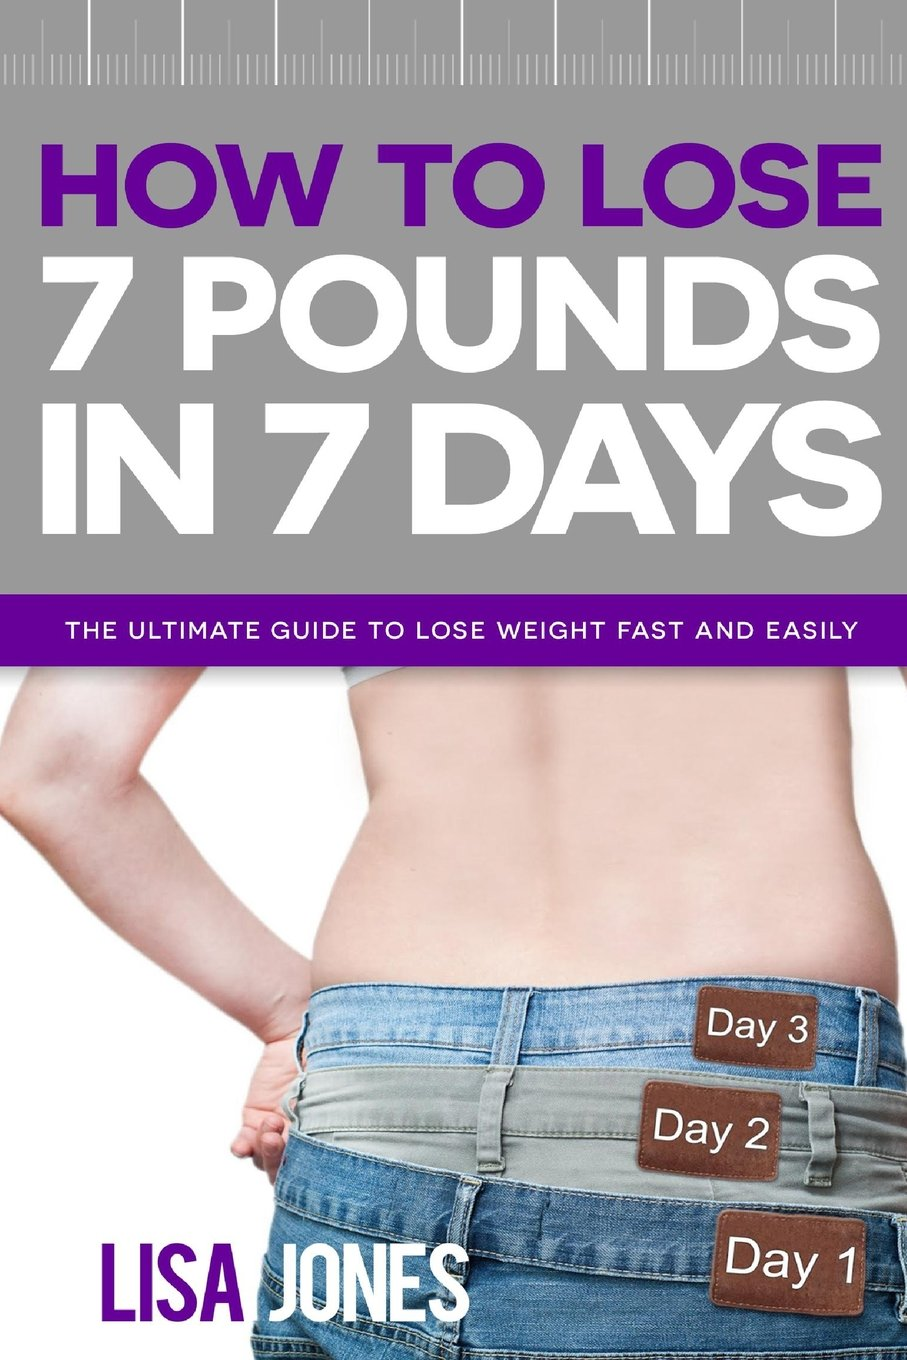 How To Lose 7 Pounds In 7 Days The Ultimate Guide To Lose Weight